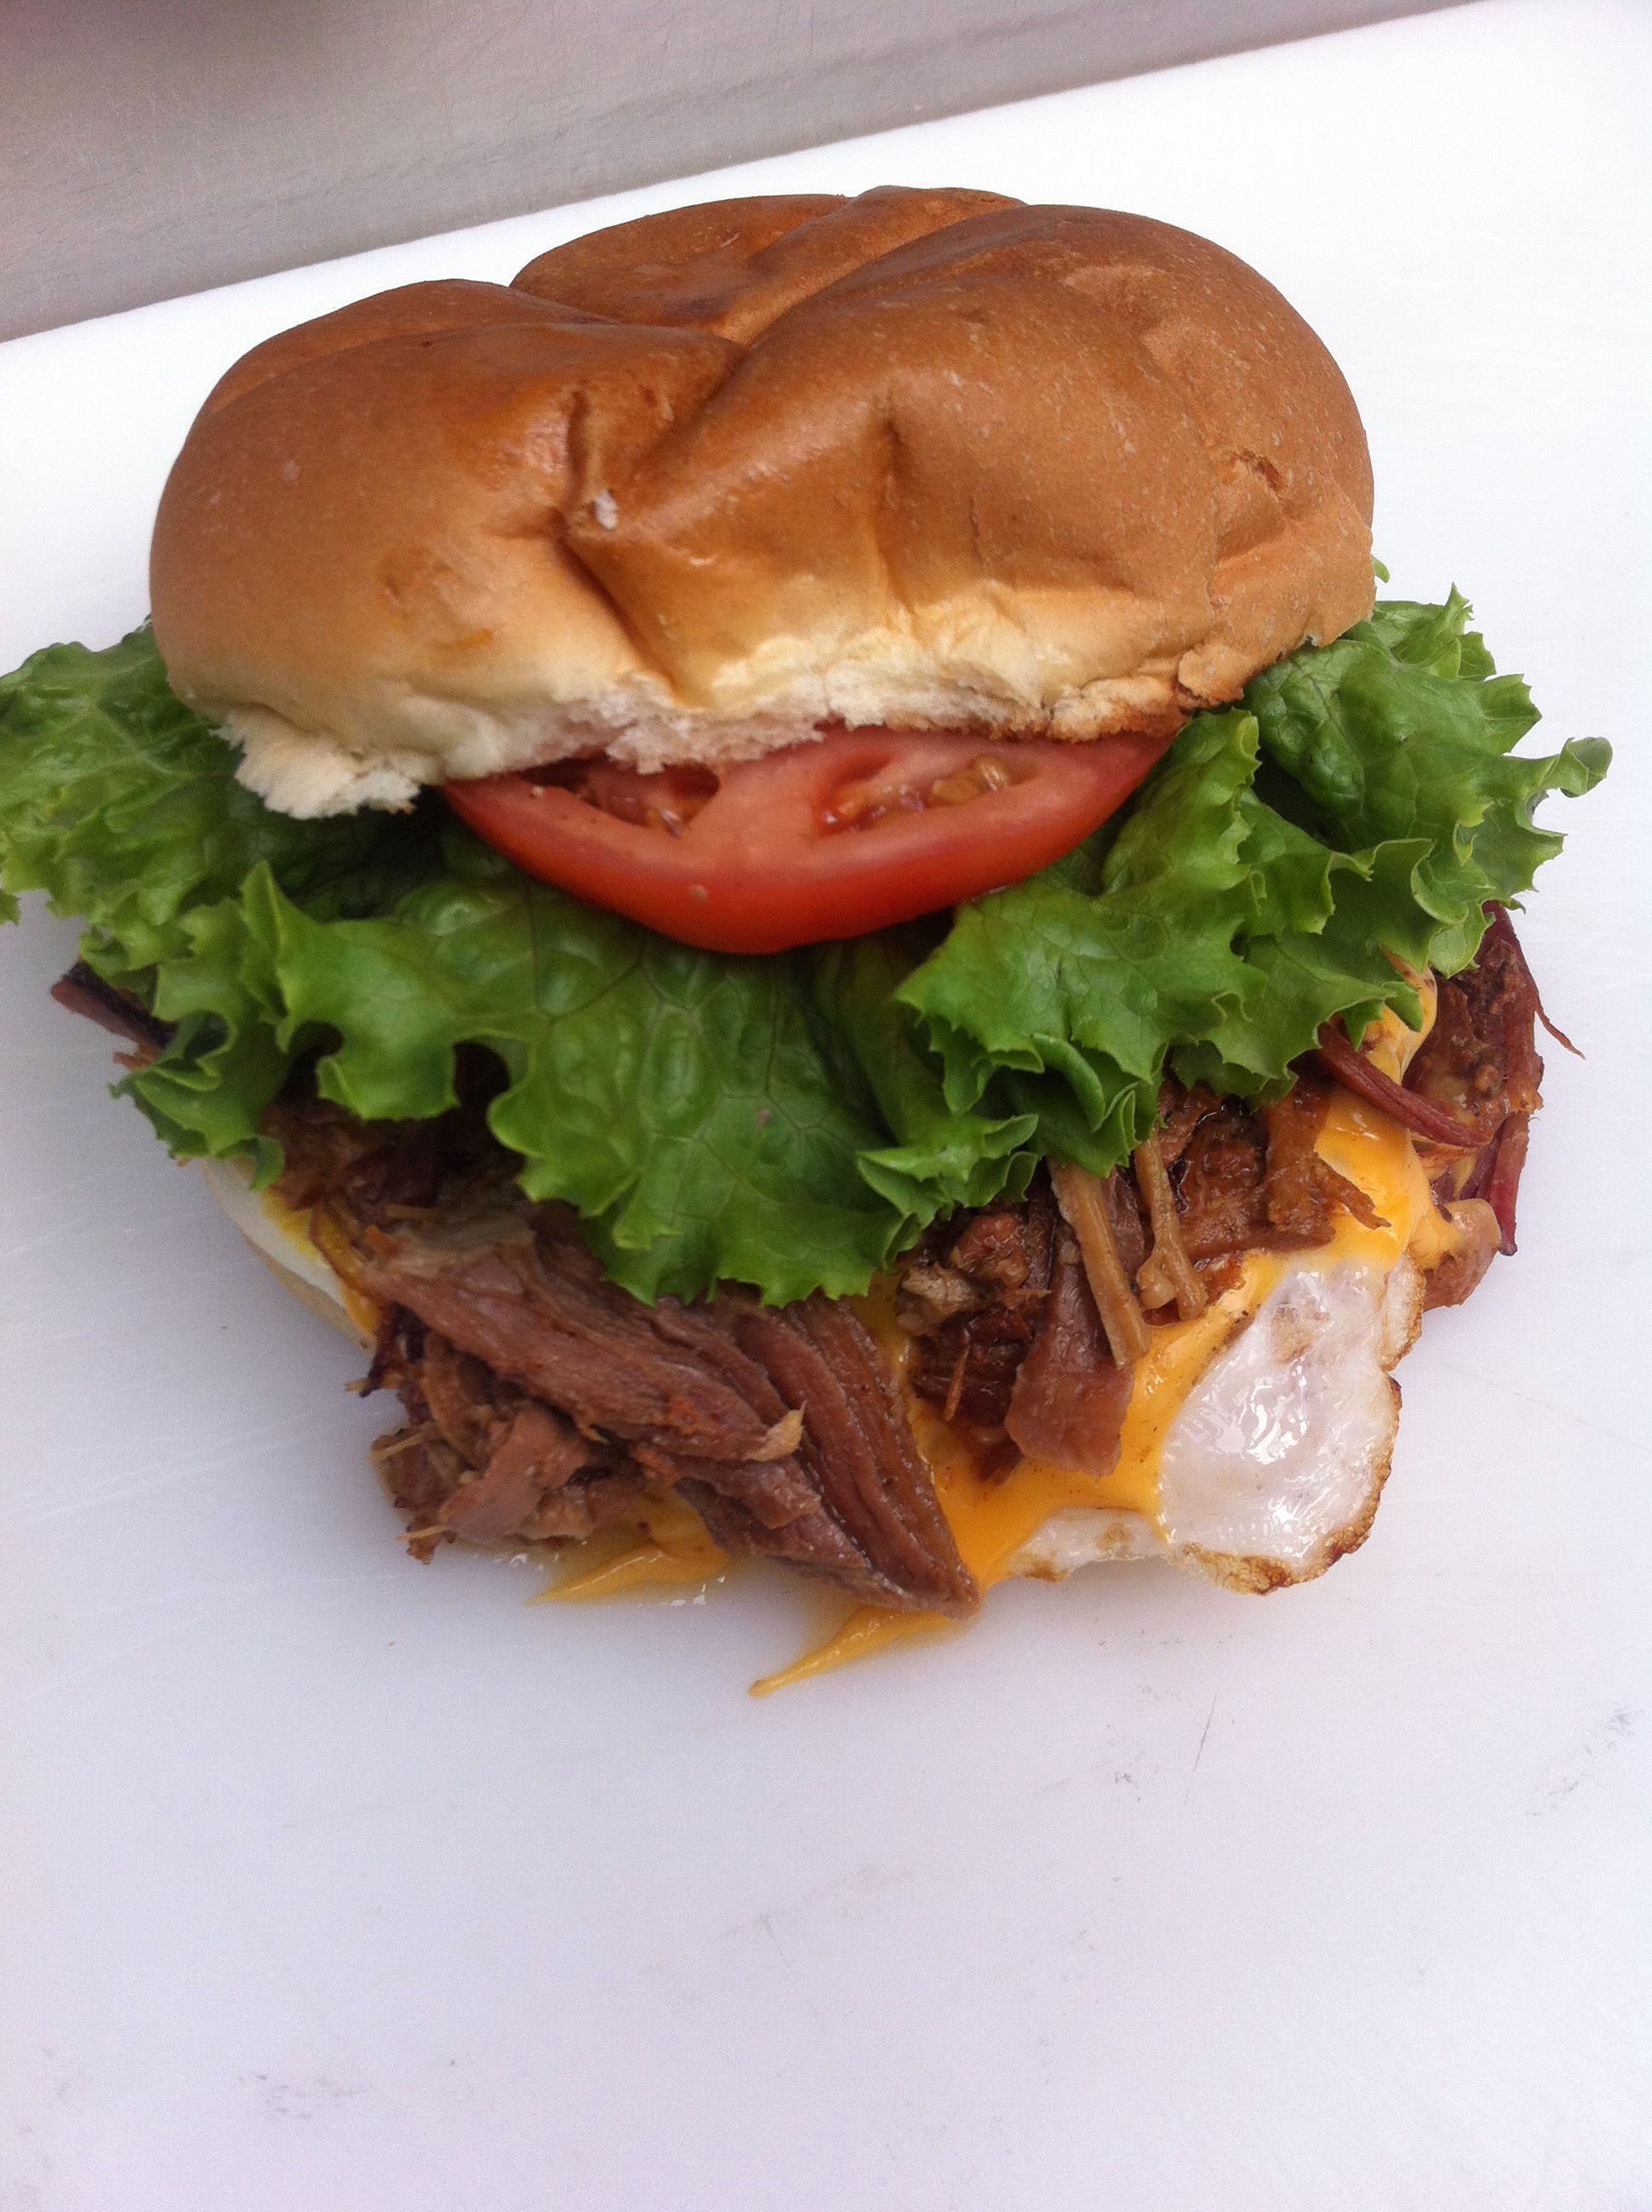 Pulled pork egger- toasted bun,egg,cheese,pulled pork and veggies. Great with coleslaw instead of lettuce&tomato